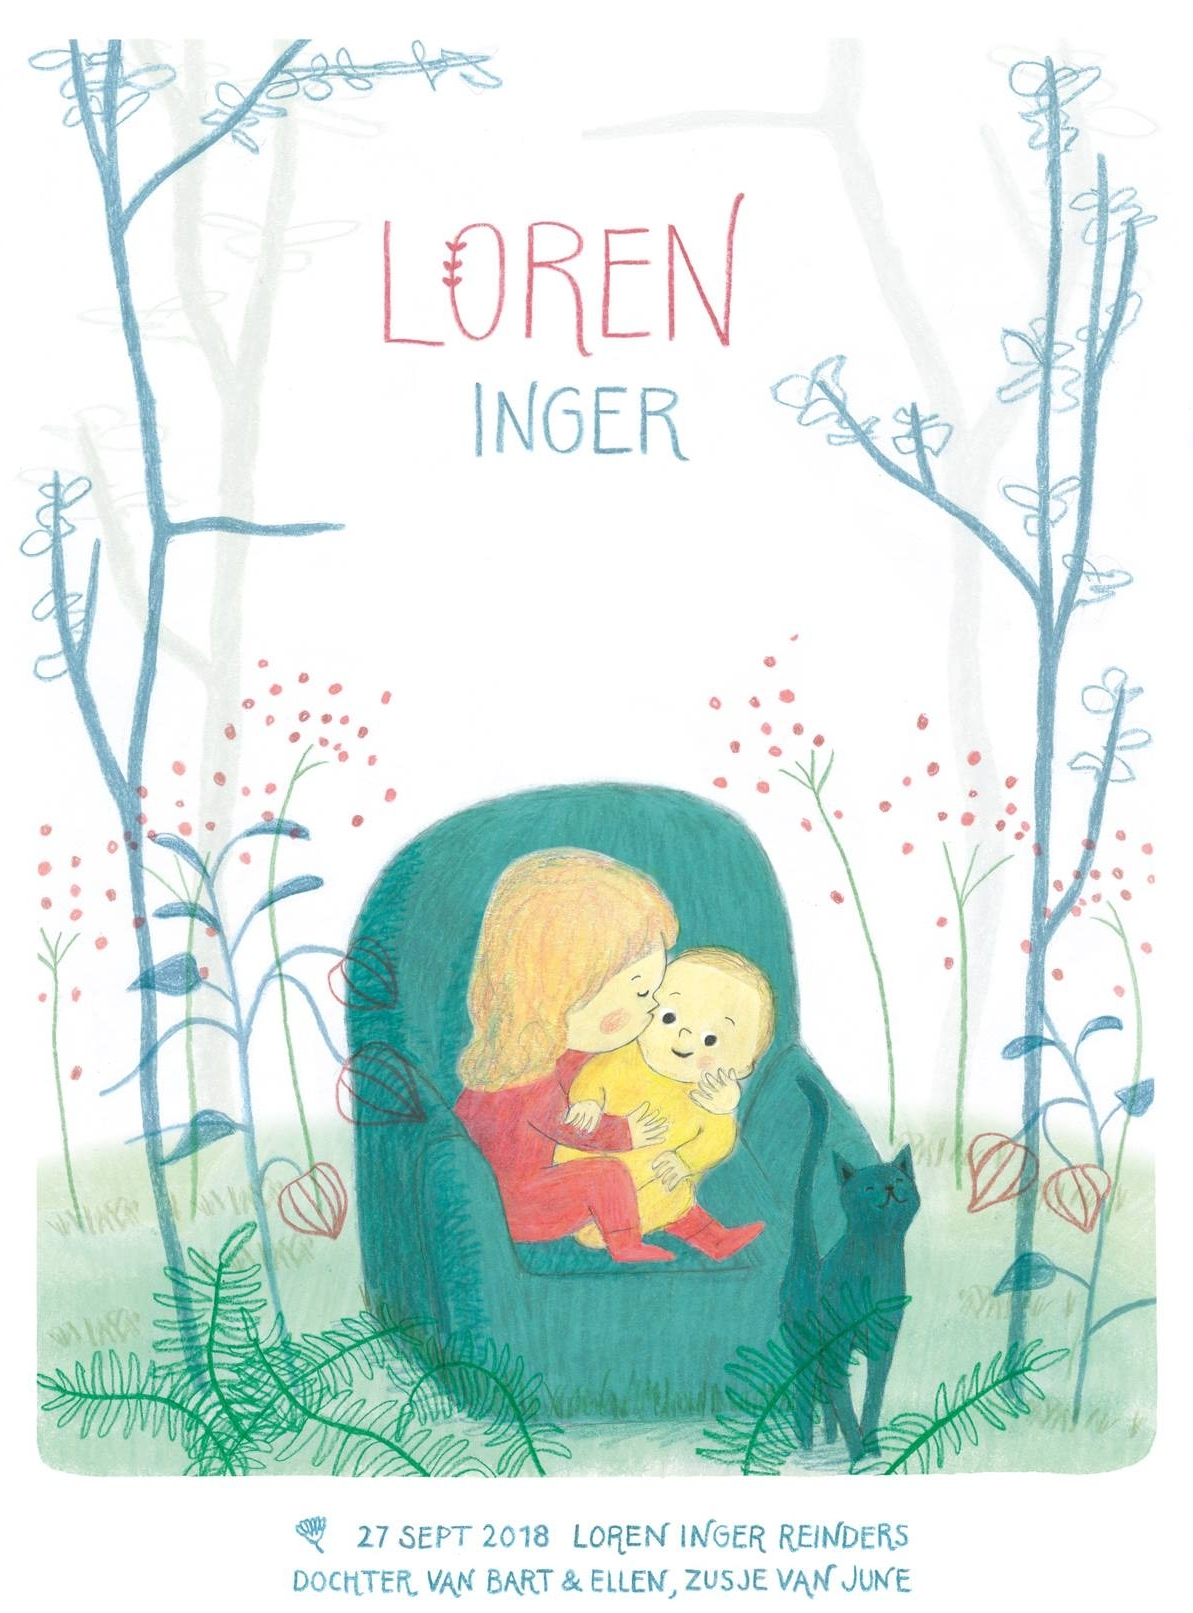 Birth announcement baby Loren by illustrator ellen vesters